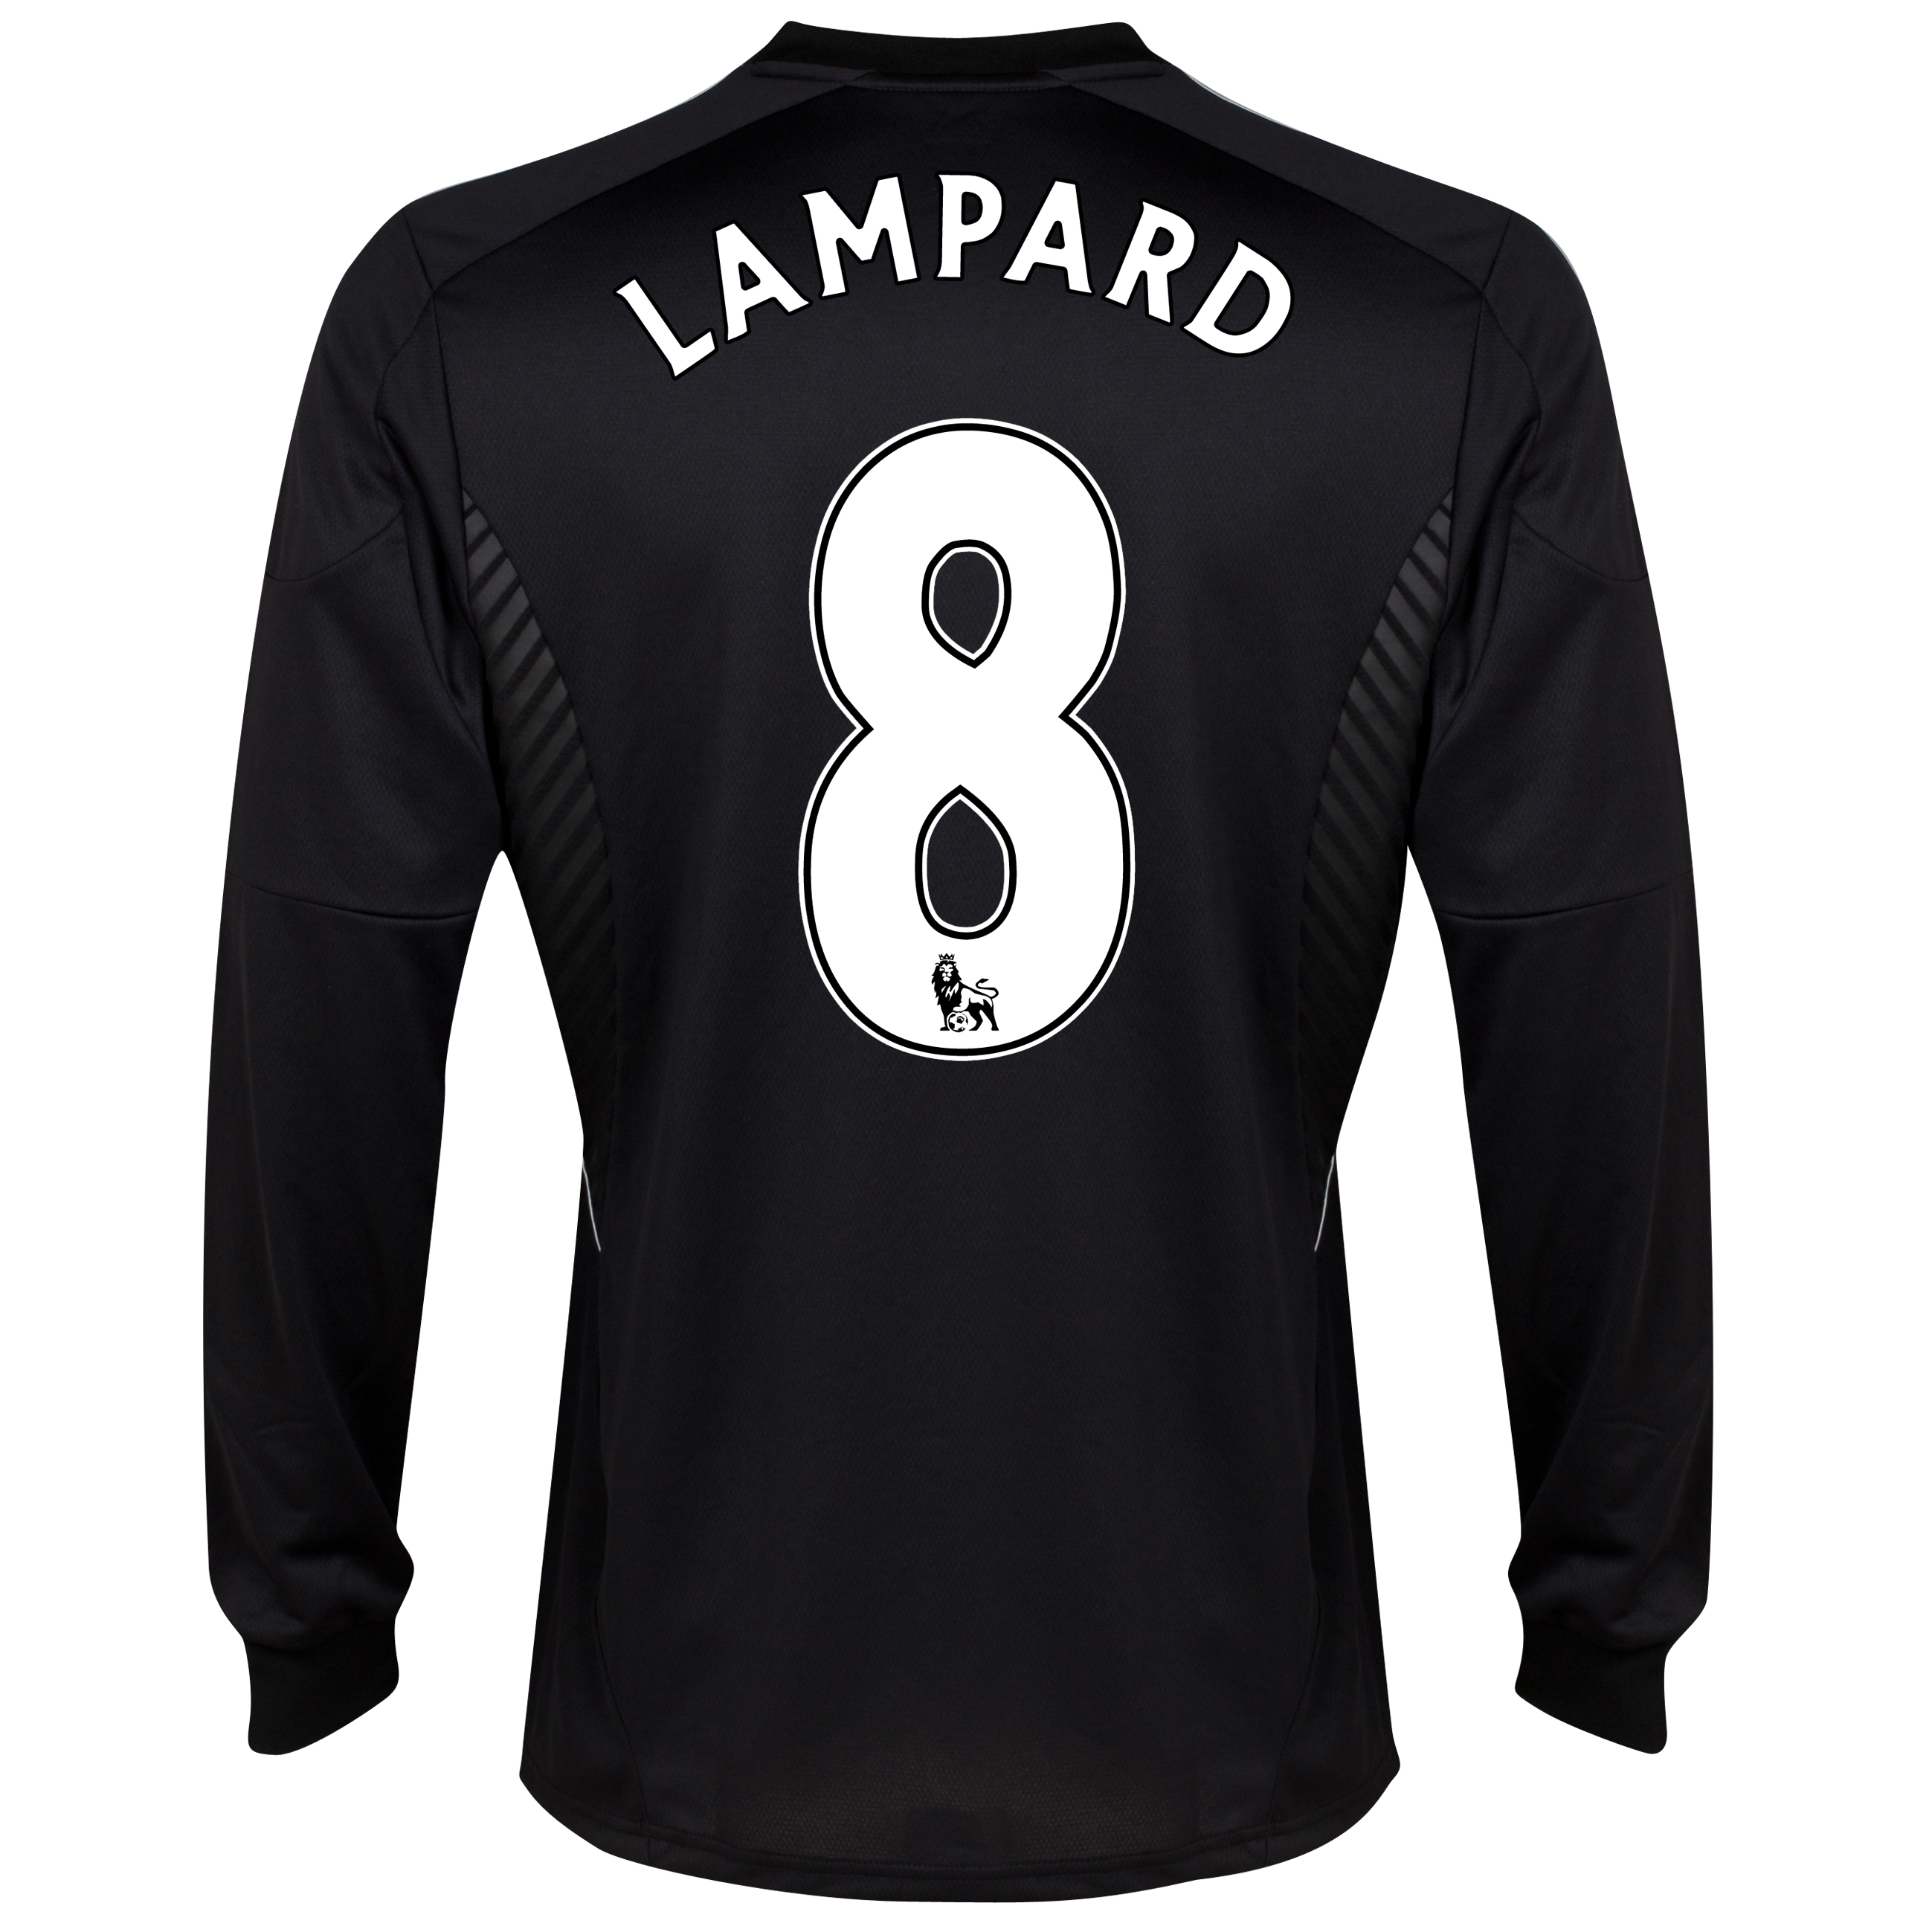 Chelsea Third Shirt 2013/14 -Long Sleeve - kids with Lampard 8 printing